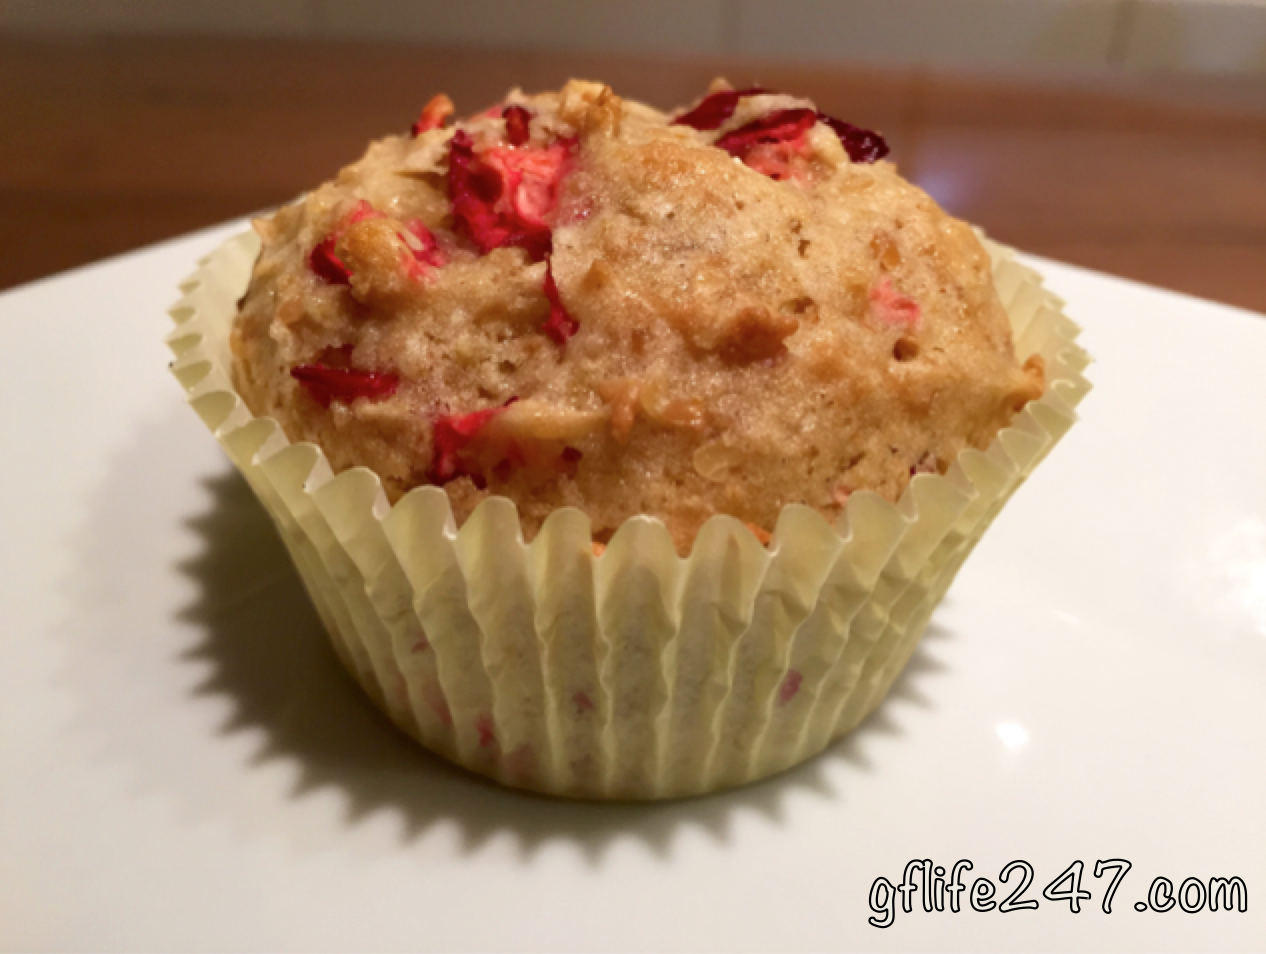 Cranberry Citrus Muffins Recipe (Gluten and Dairy Free)